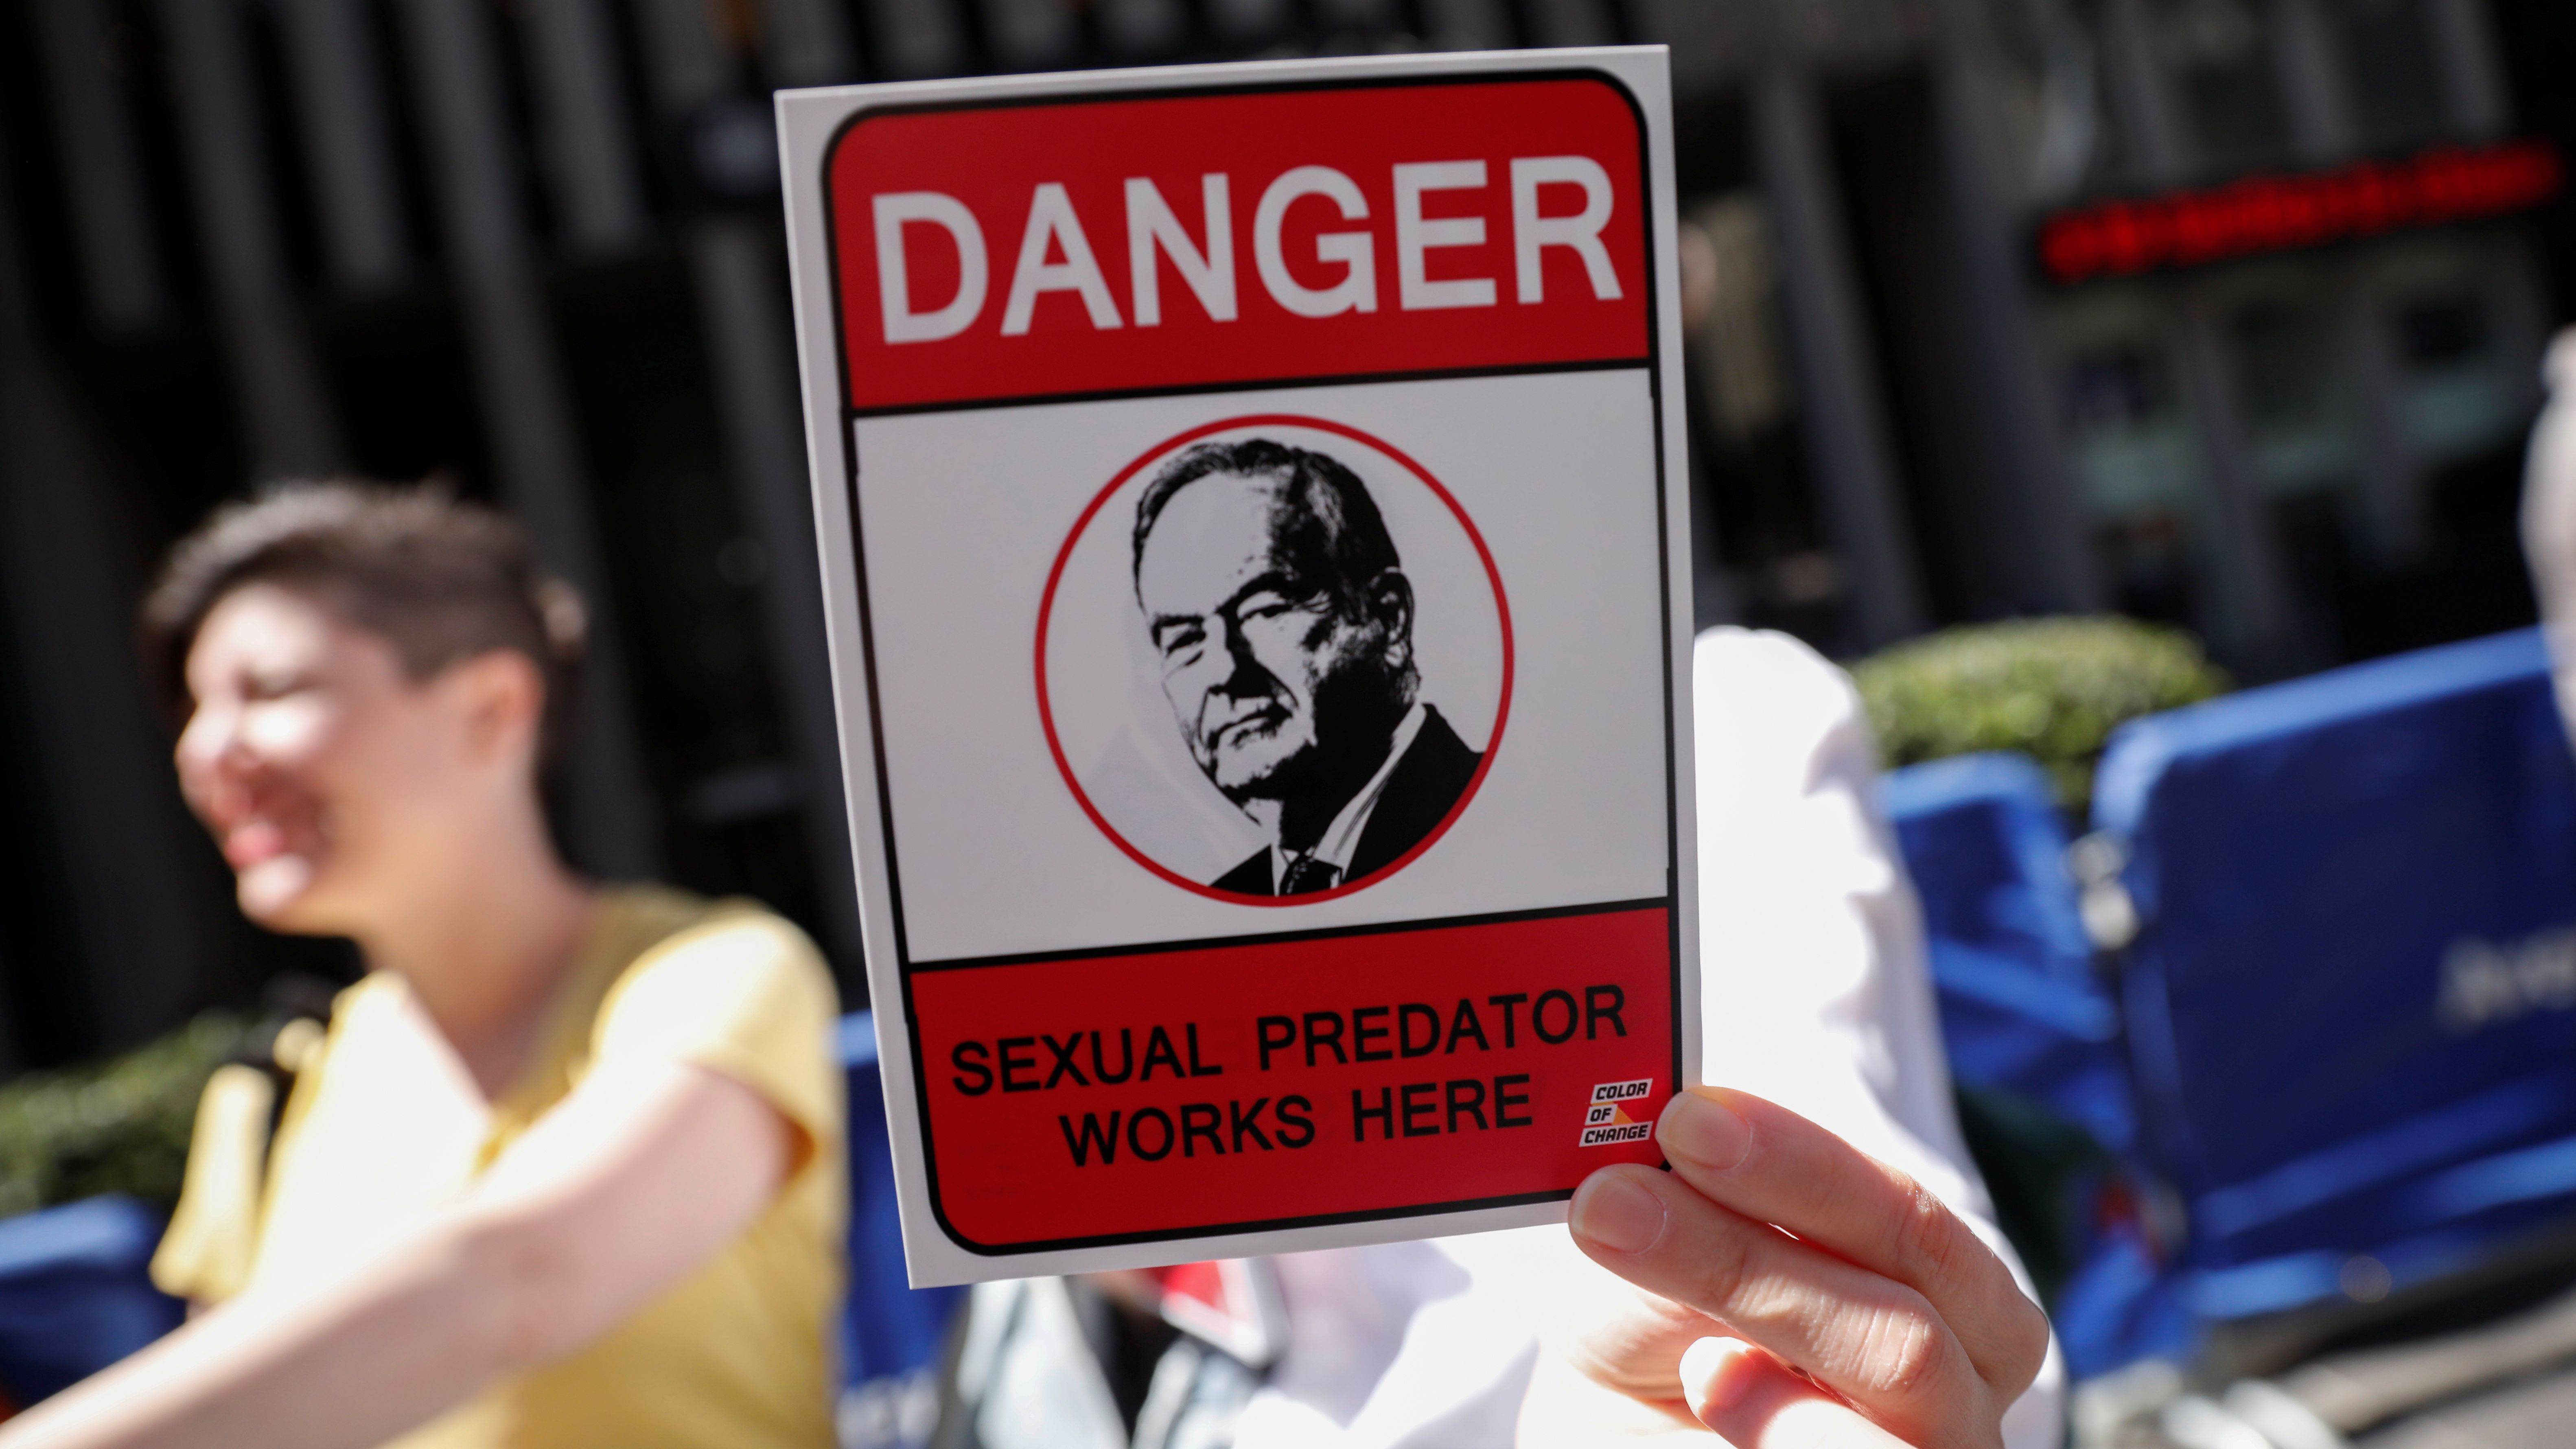 A demonstrator holds a sign at a protest calling for the firing of Fox News Channel TV anchor Bill O'Reilly outside the News Corporation headquarters in New York City, New York, U.S., April 18, 2017.